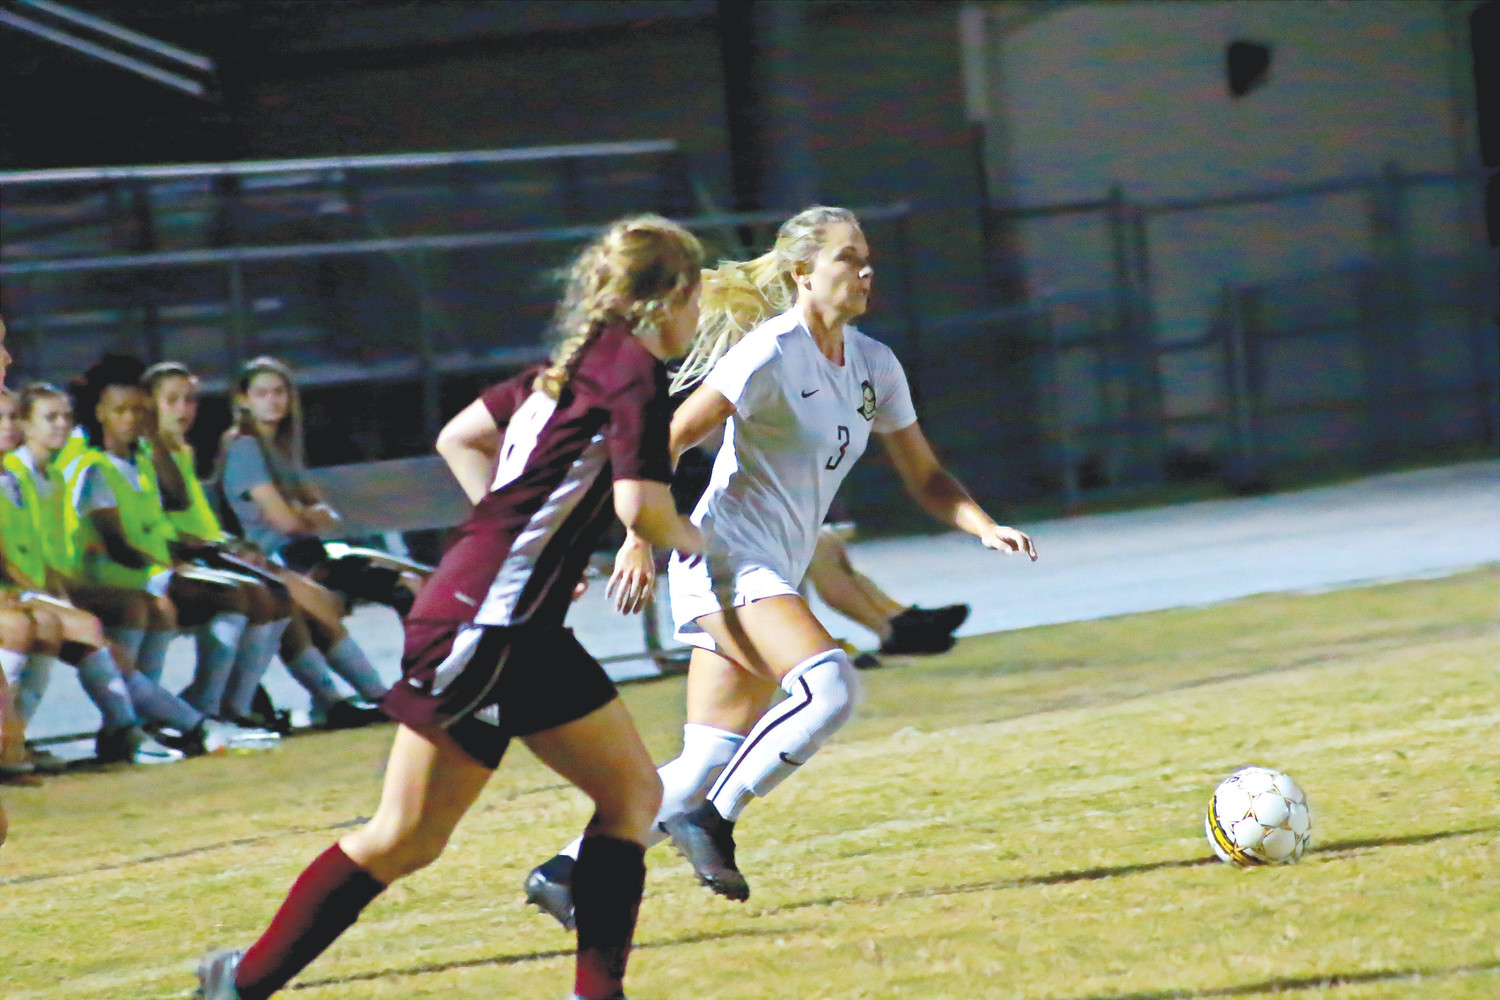 Oakleaf center midfielder Alyssa Farmer makes move around St. Augustine player to get ball downfield into offensive zone.